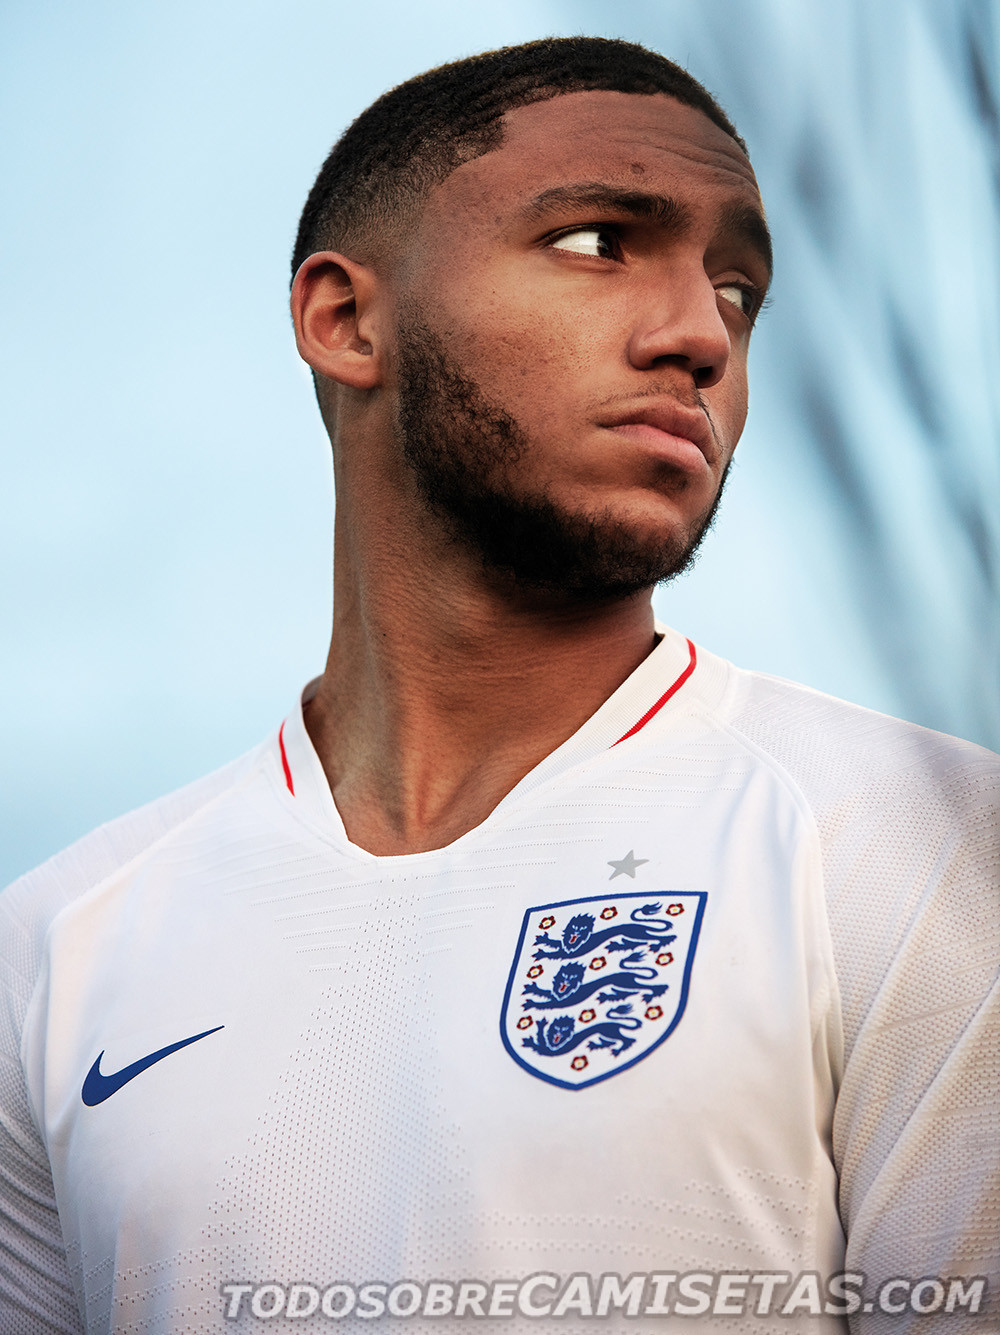 england-2018-world-cup-kits-nike-9.jpg